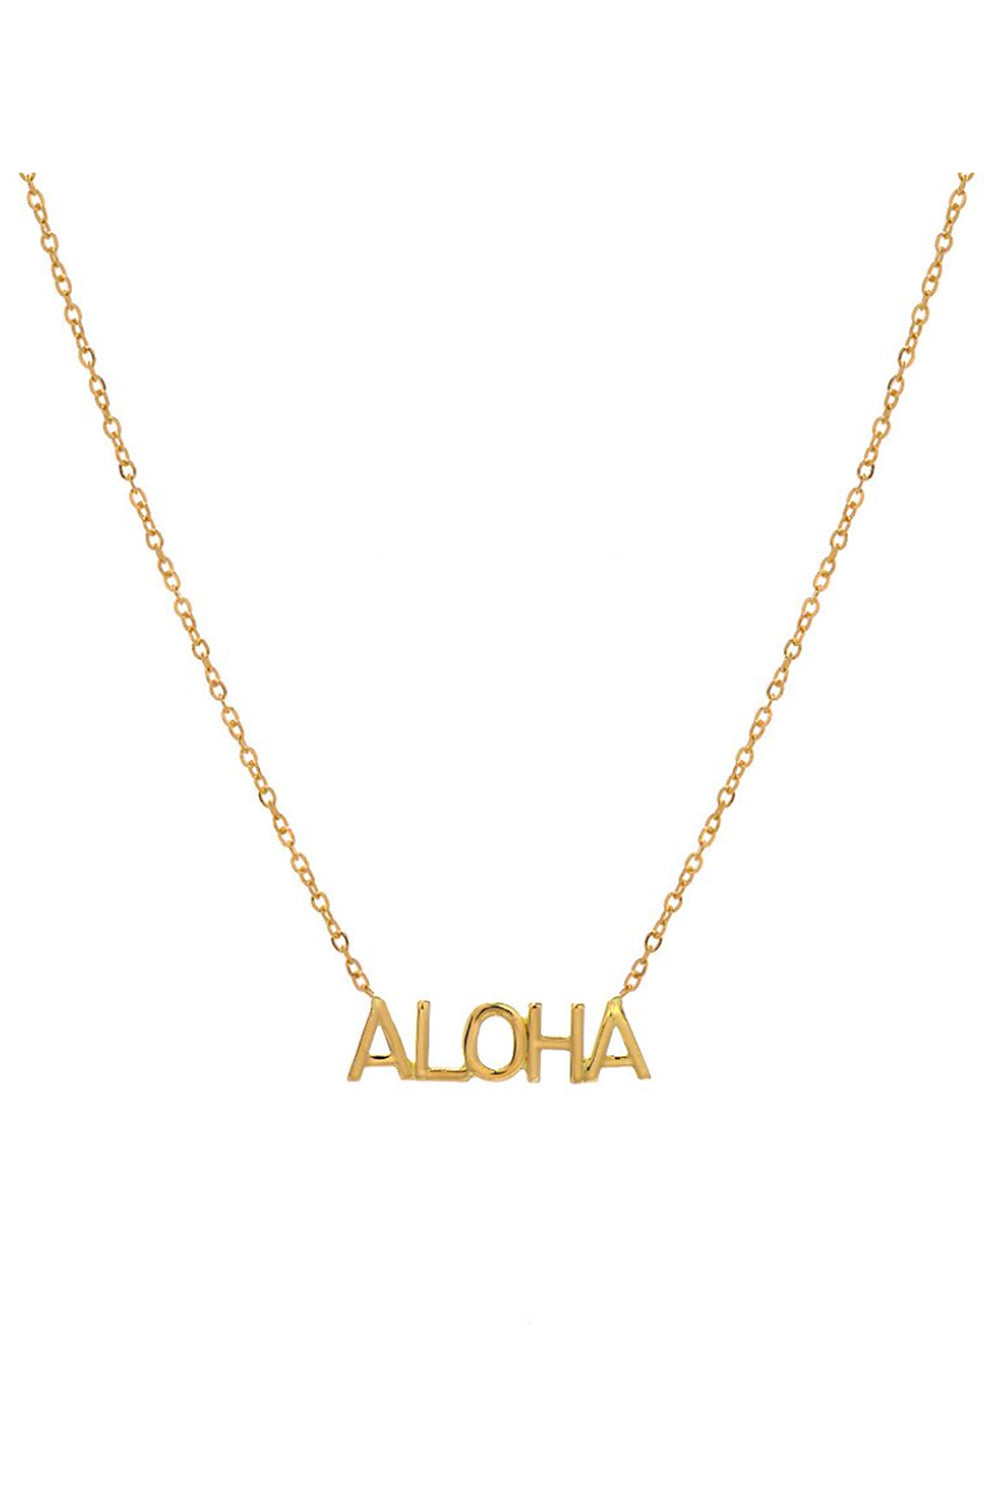 BYCHARI ALOHA Necklace 14K